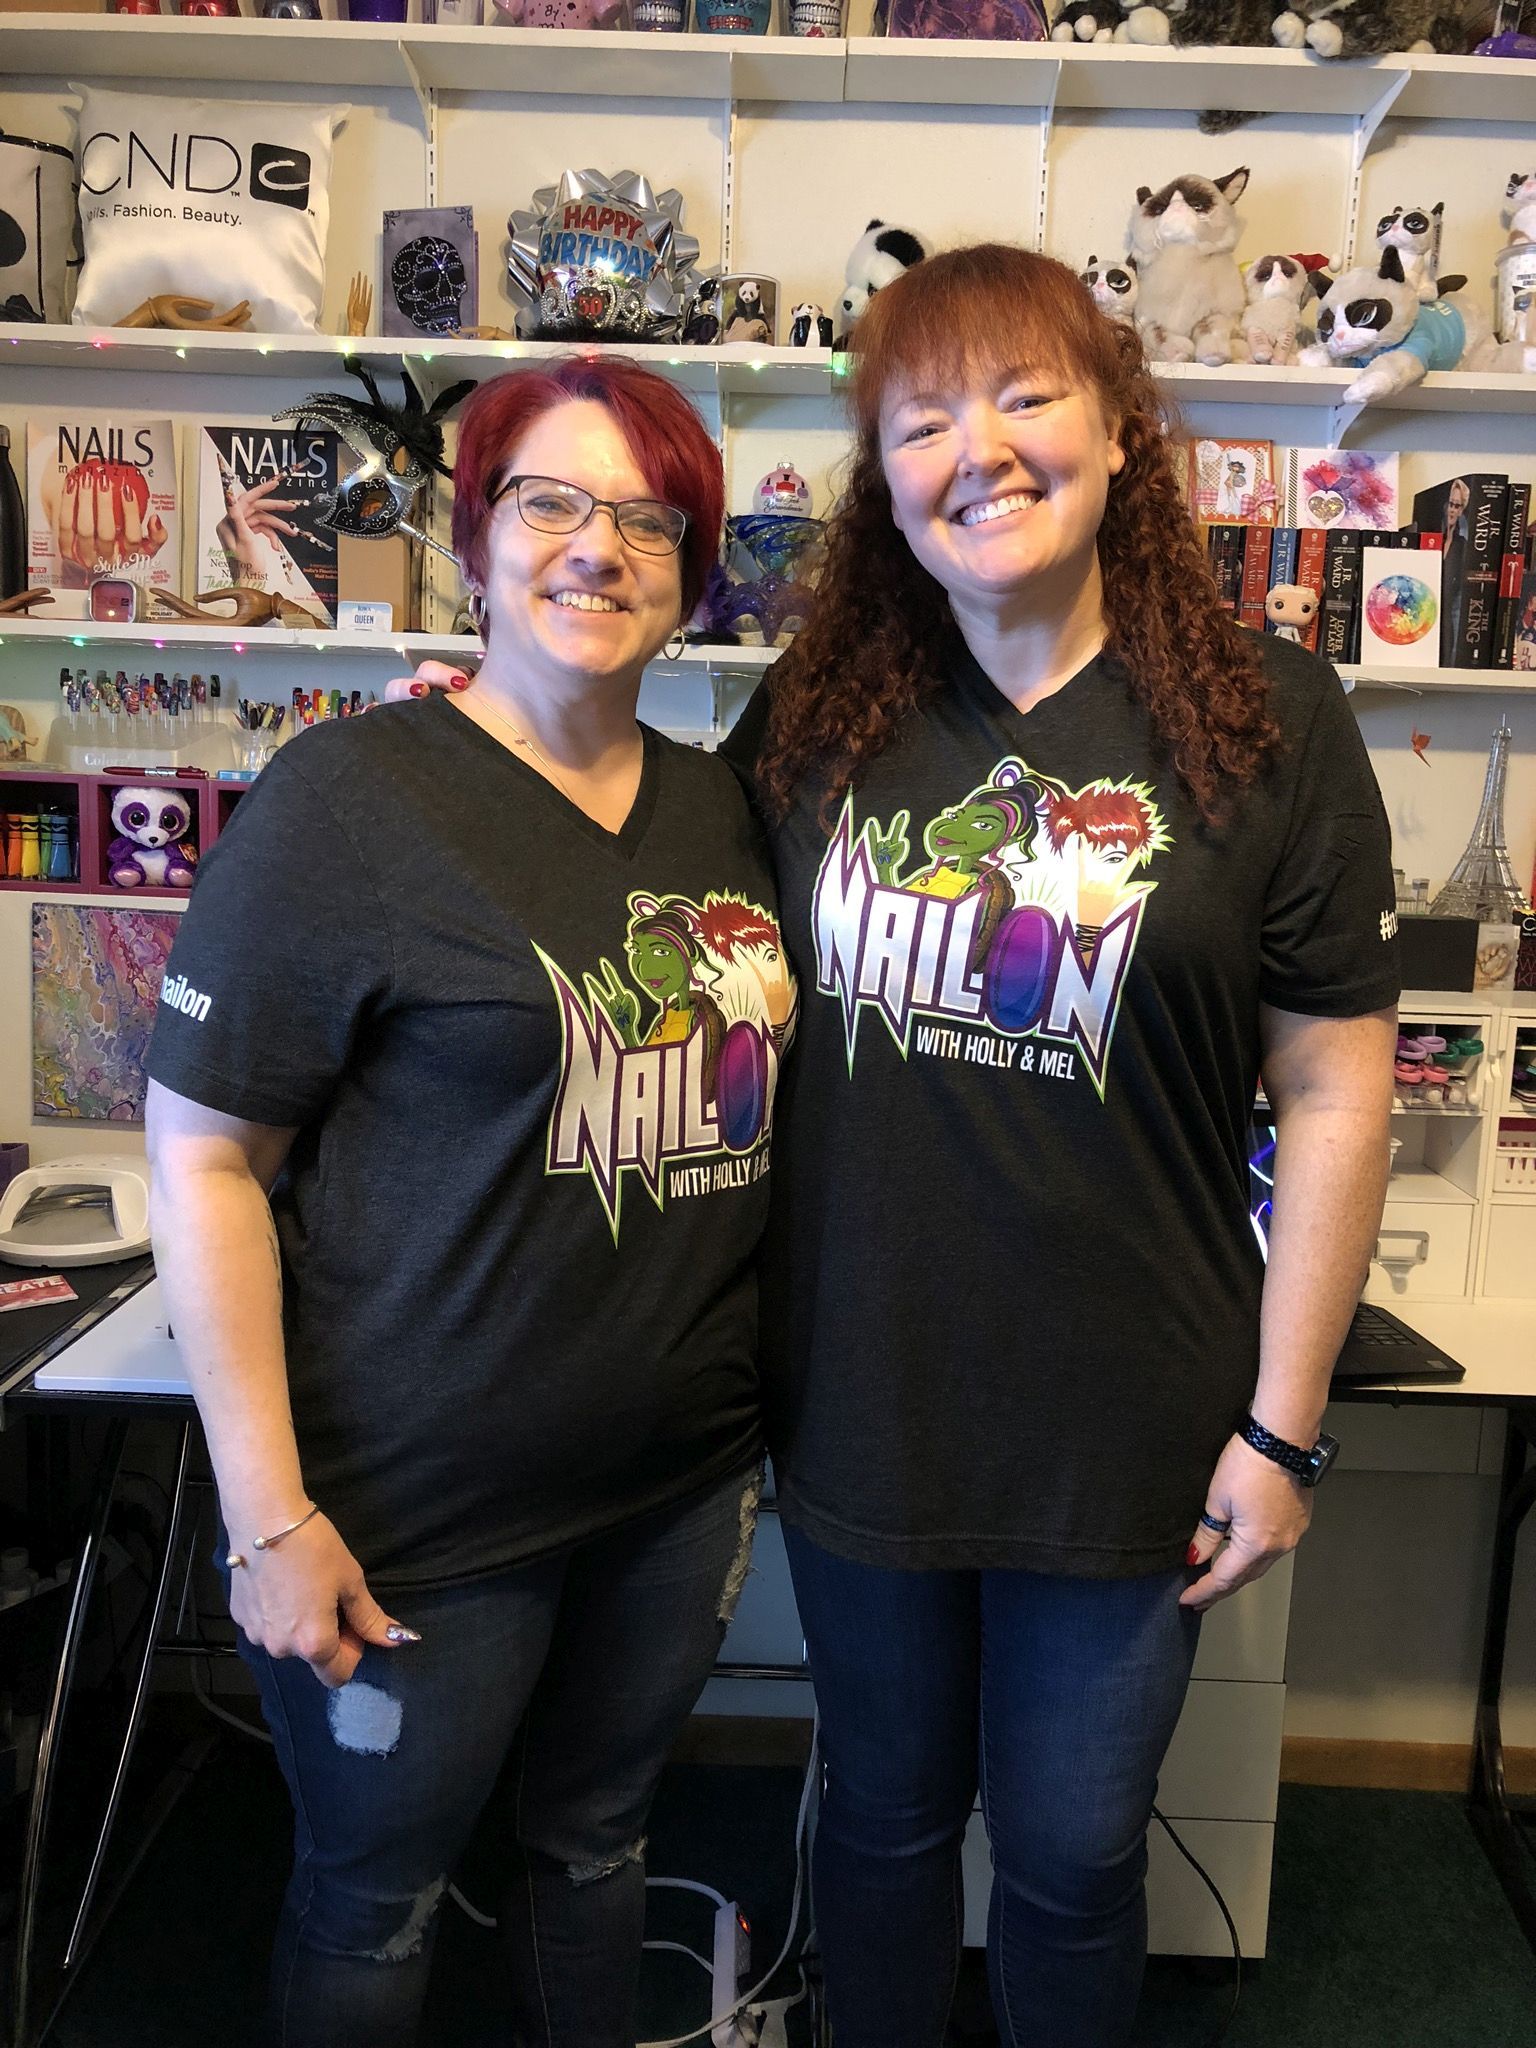 NailOn with Holly and Mel Is Celebrating Its One-Year Anniversary!